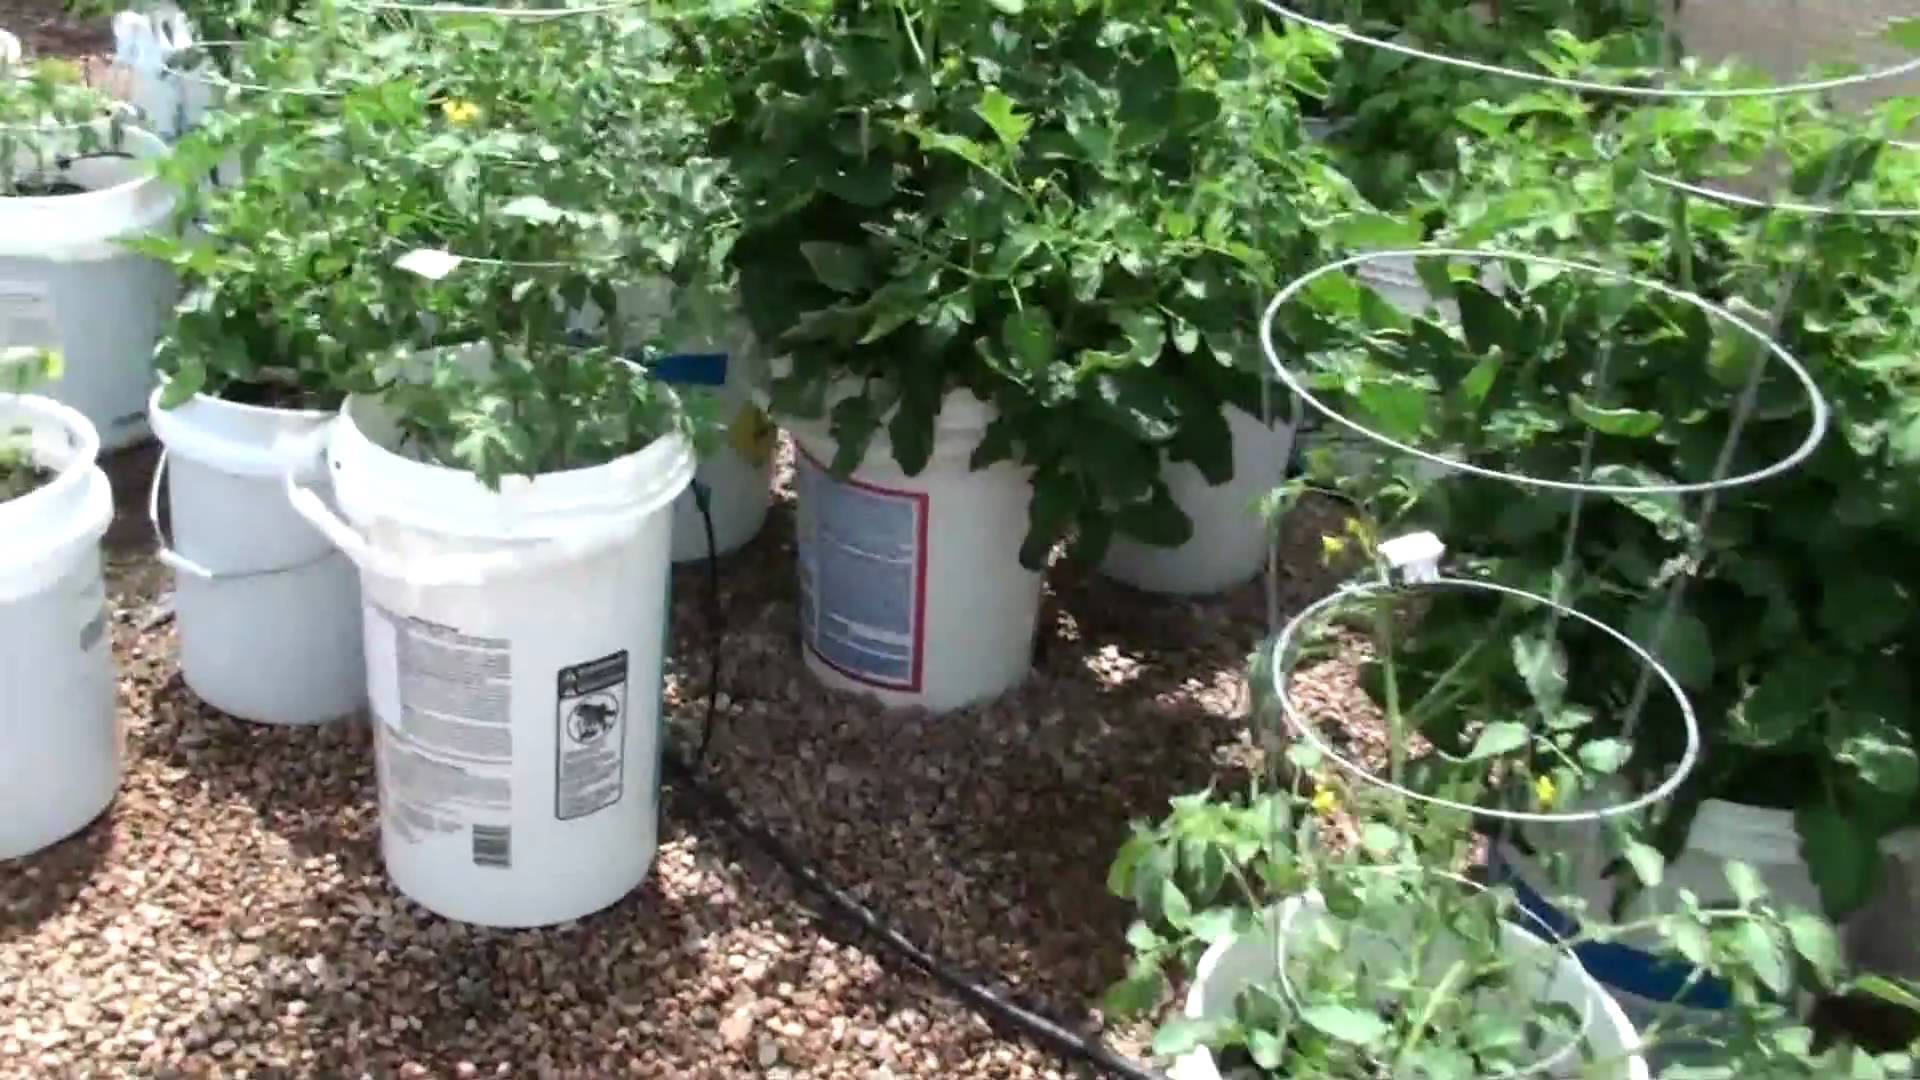 How To Make A 5 Gallon Bucket Garden 1 Holes In The Bottom 4 Above Soil Line 2 Of Gravel